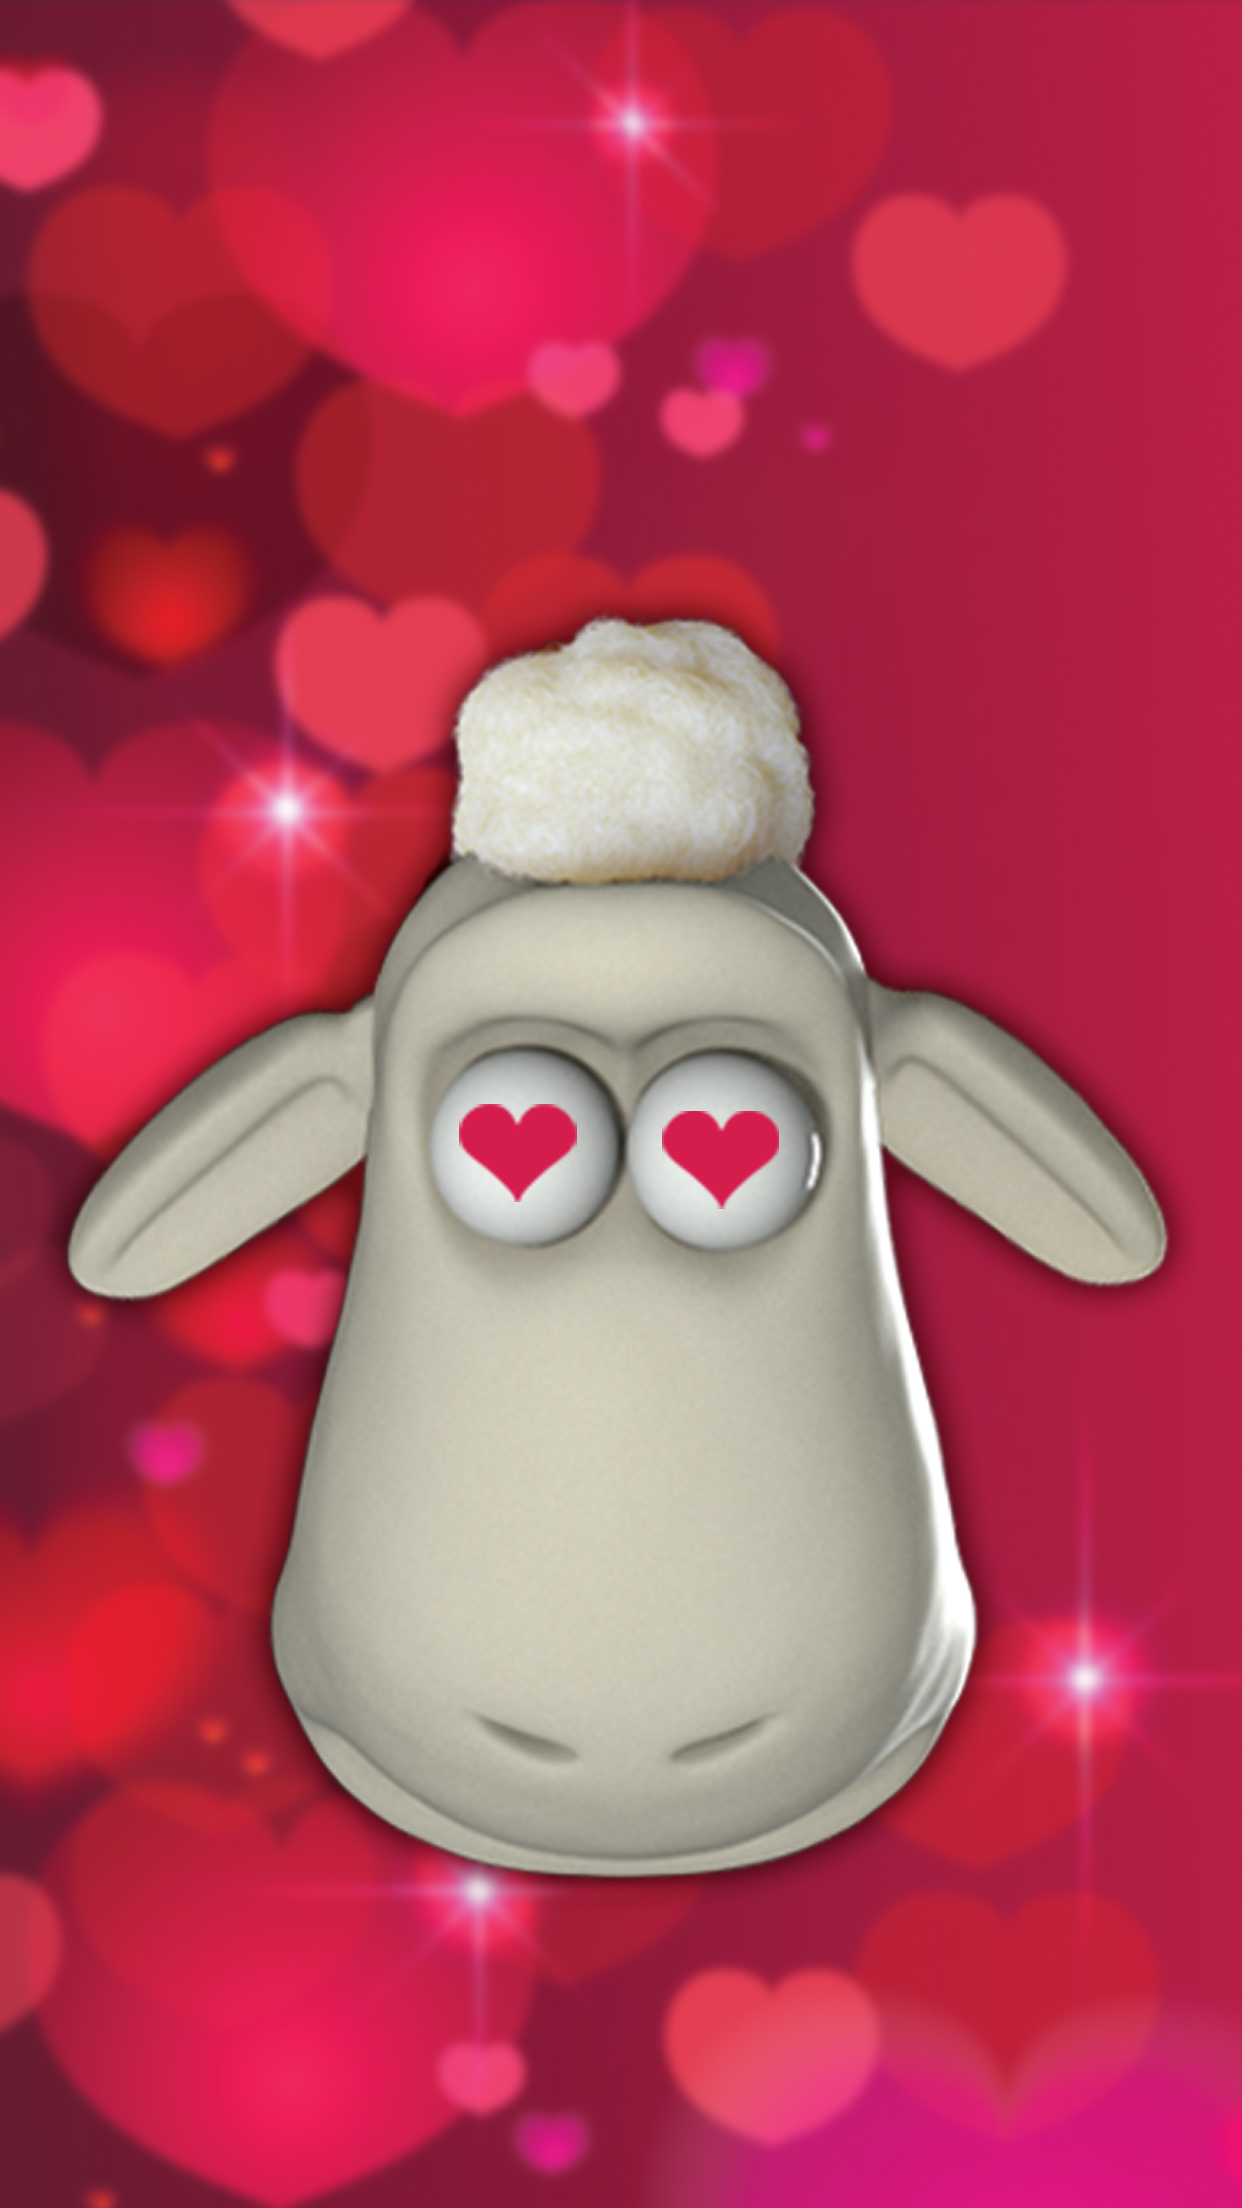 Serta Counting Sheep mobile wallpaper 2